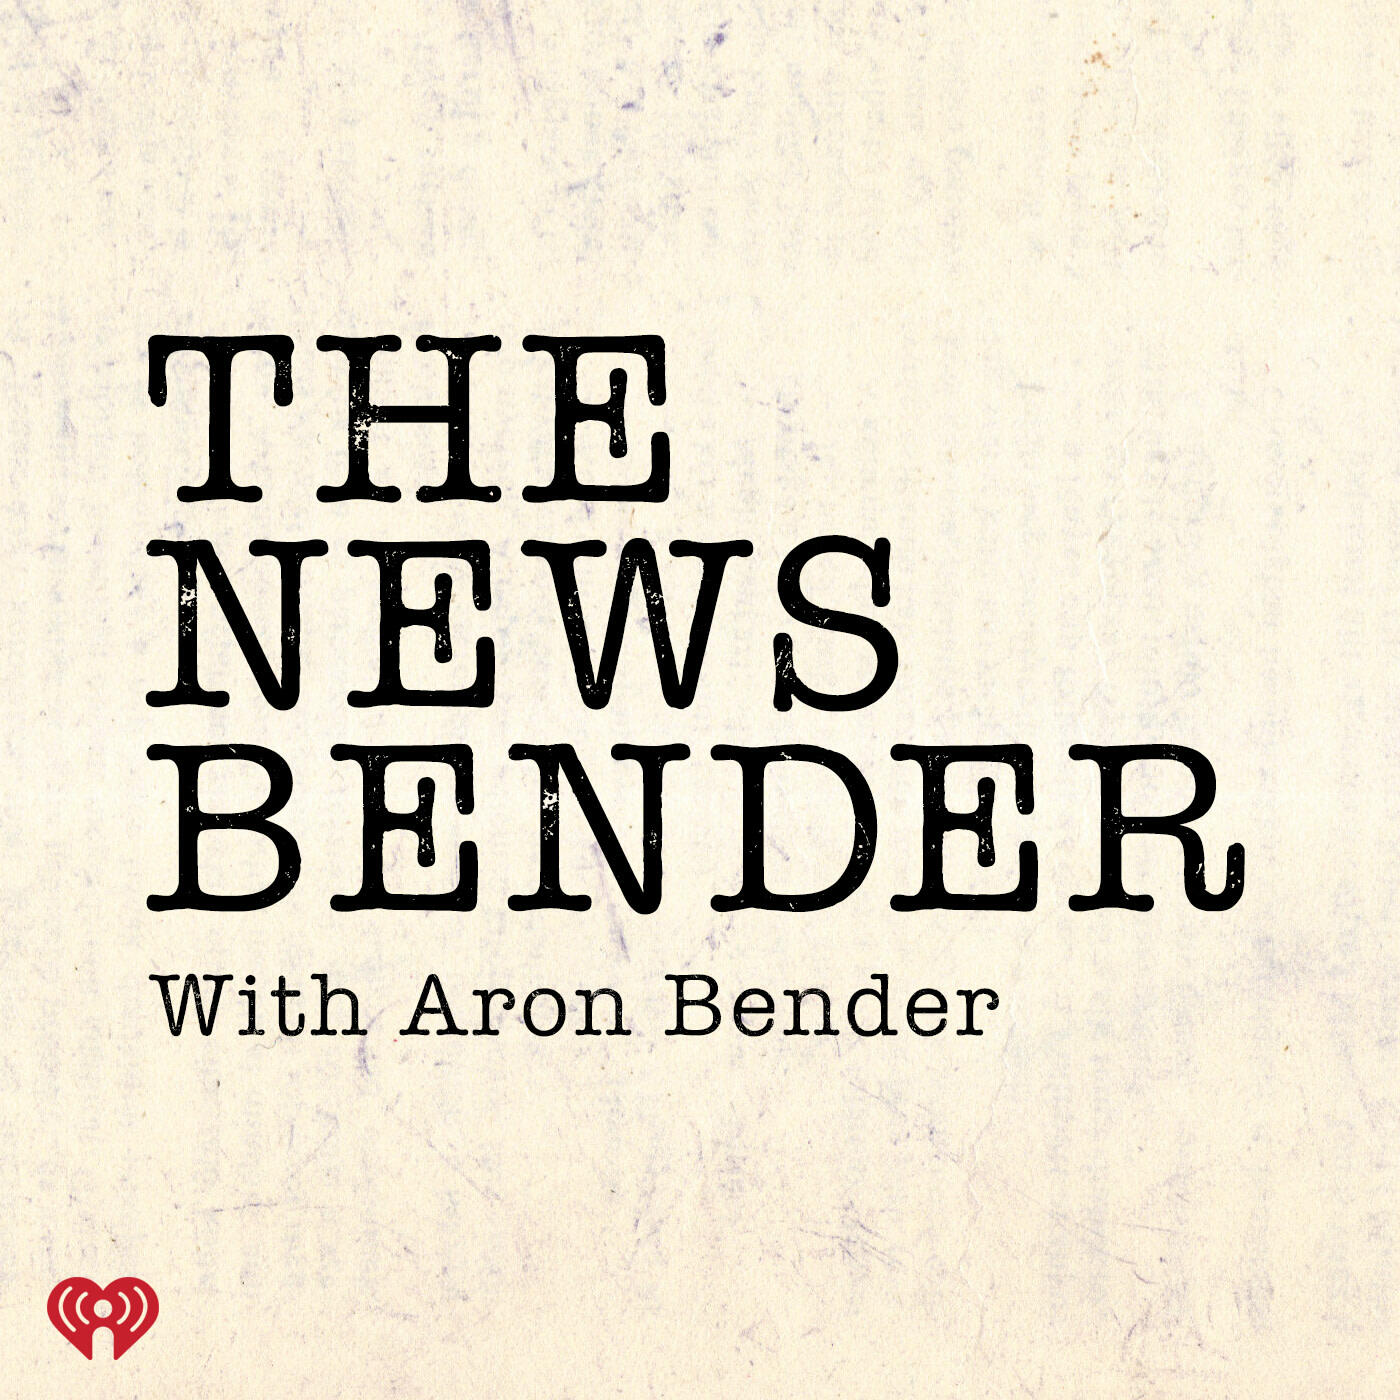 Listen to the The News Bender Episode - Kacey Montoya is covered in dog hair on iHeartRadio | iHeartRadio